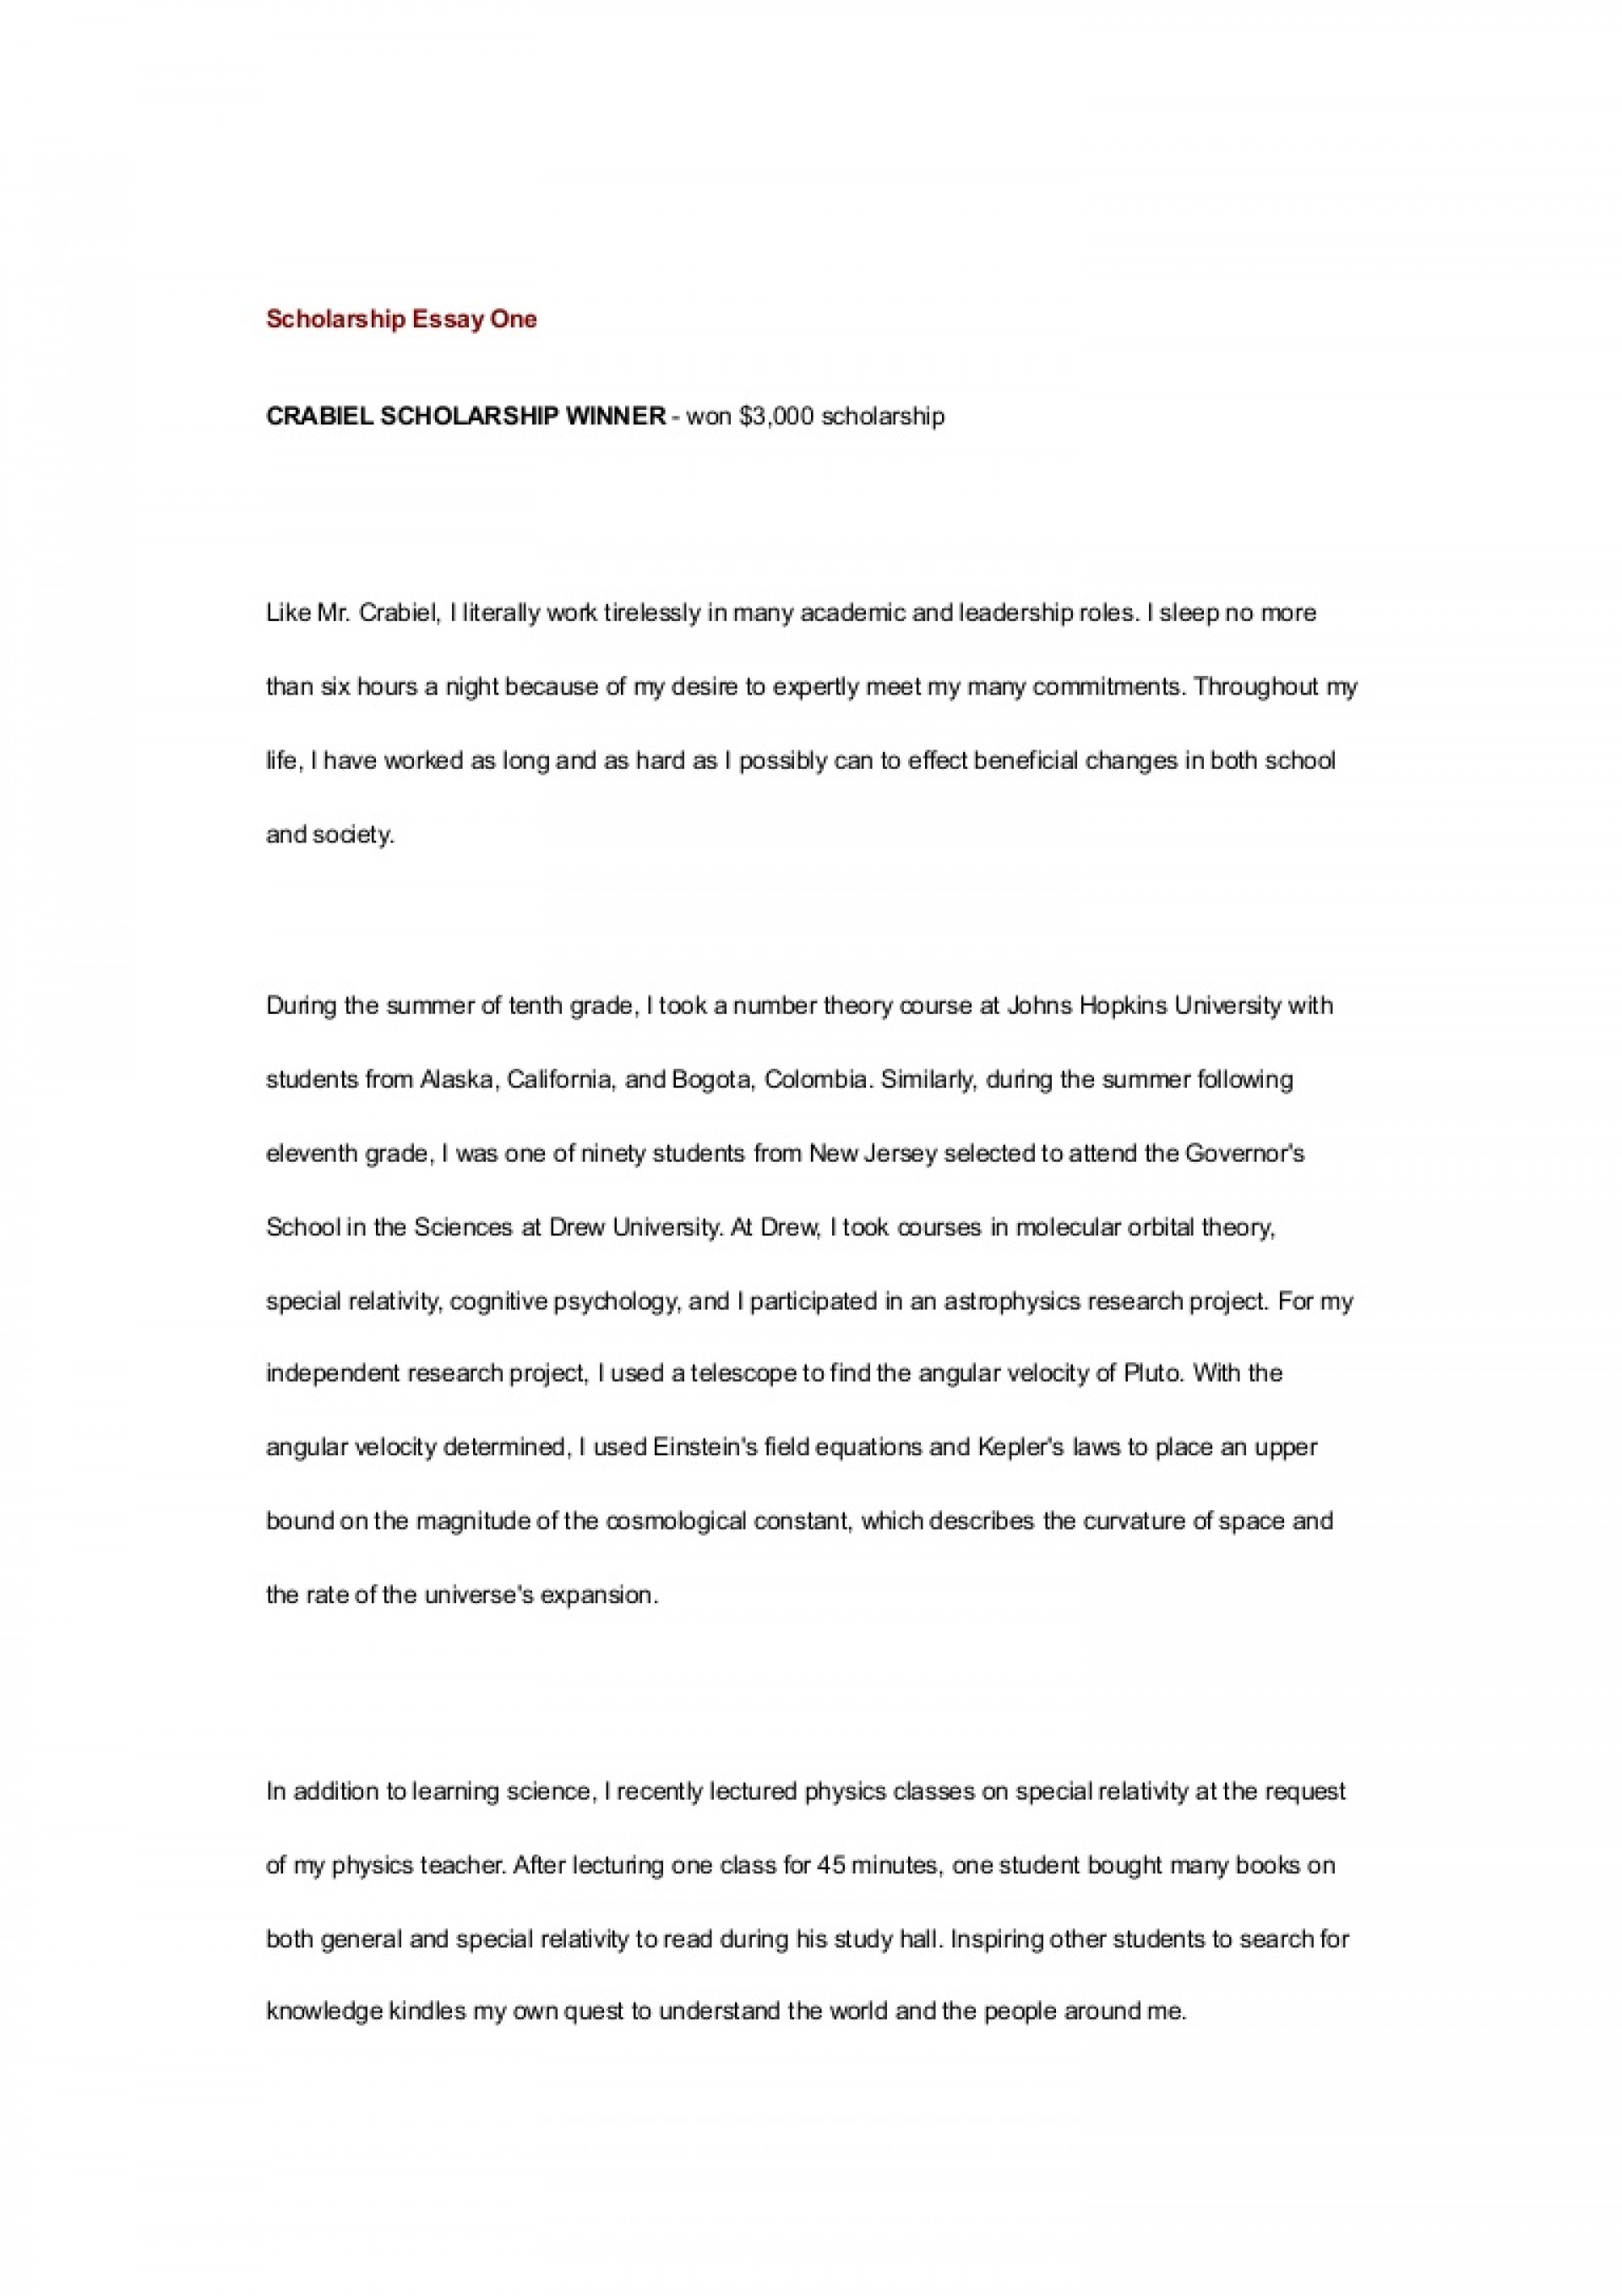 006 Scholarshipessayone Phpapp01 Thumbnail Essay Example Financial Need Imposing Scholarship Describe Your For This 1920